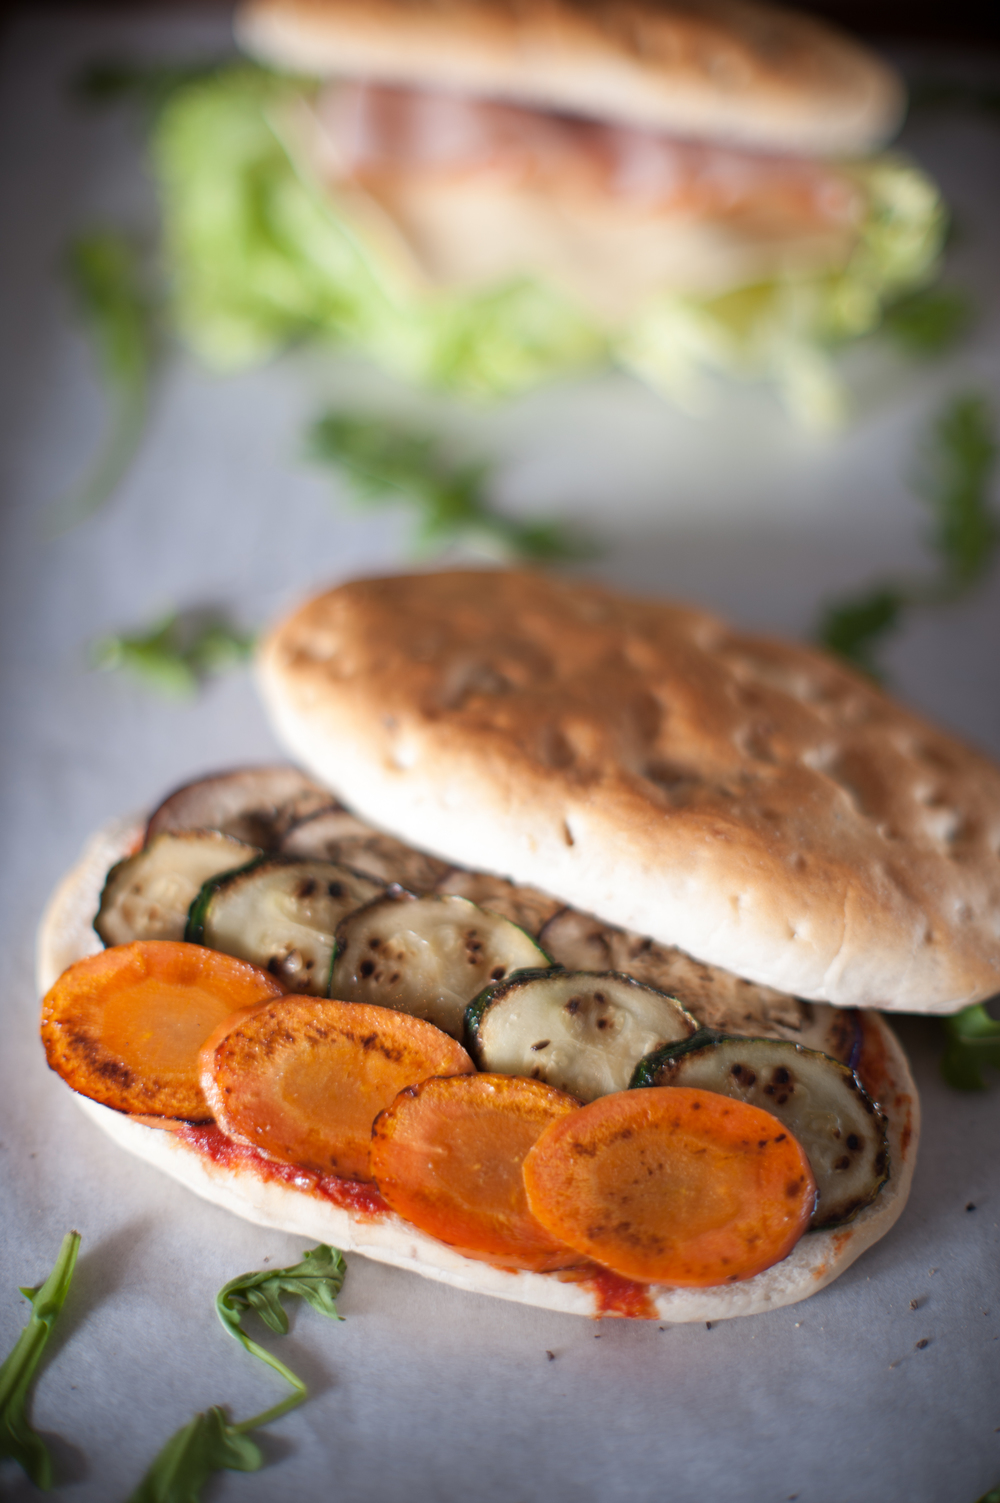 Roasted summer vegetable